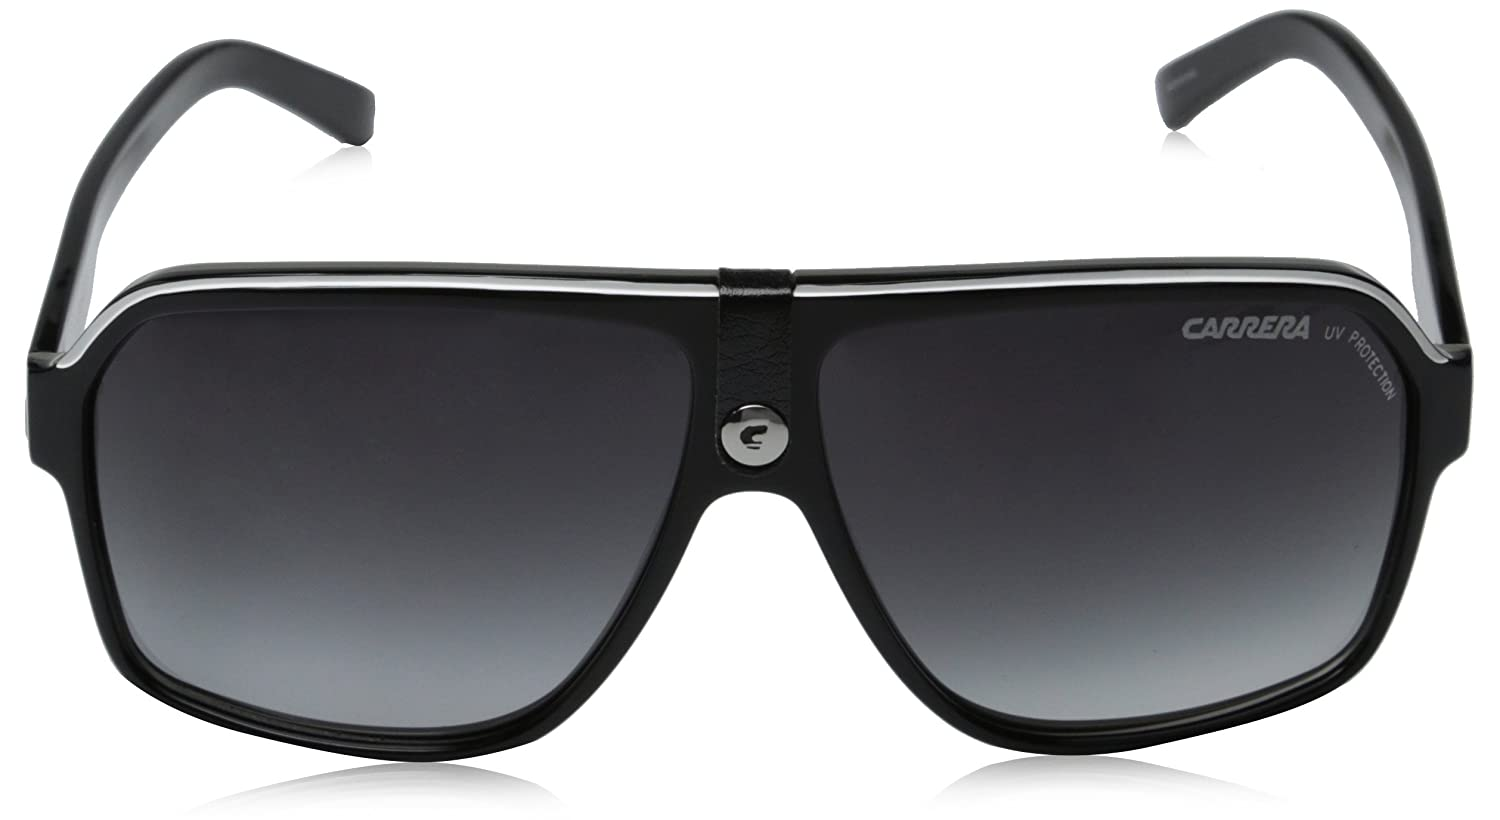 9bcb4f0d4302 Carrera Ca33S Aviator Sunglasses, Black Crystal Grey Frame, Dark Grey  Gradient Lens, One Size: Carrera: Amazon.ca: Clothing & Accessories